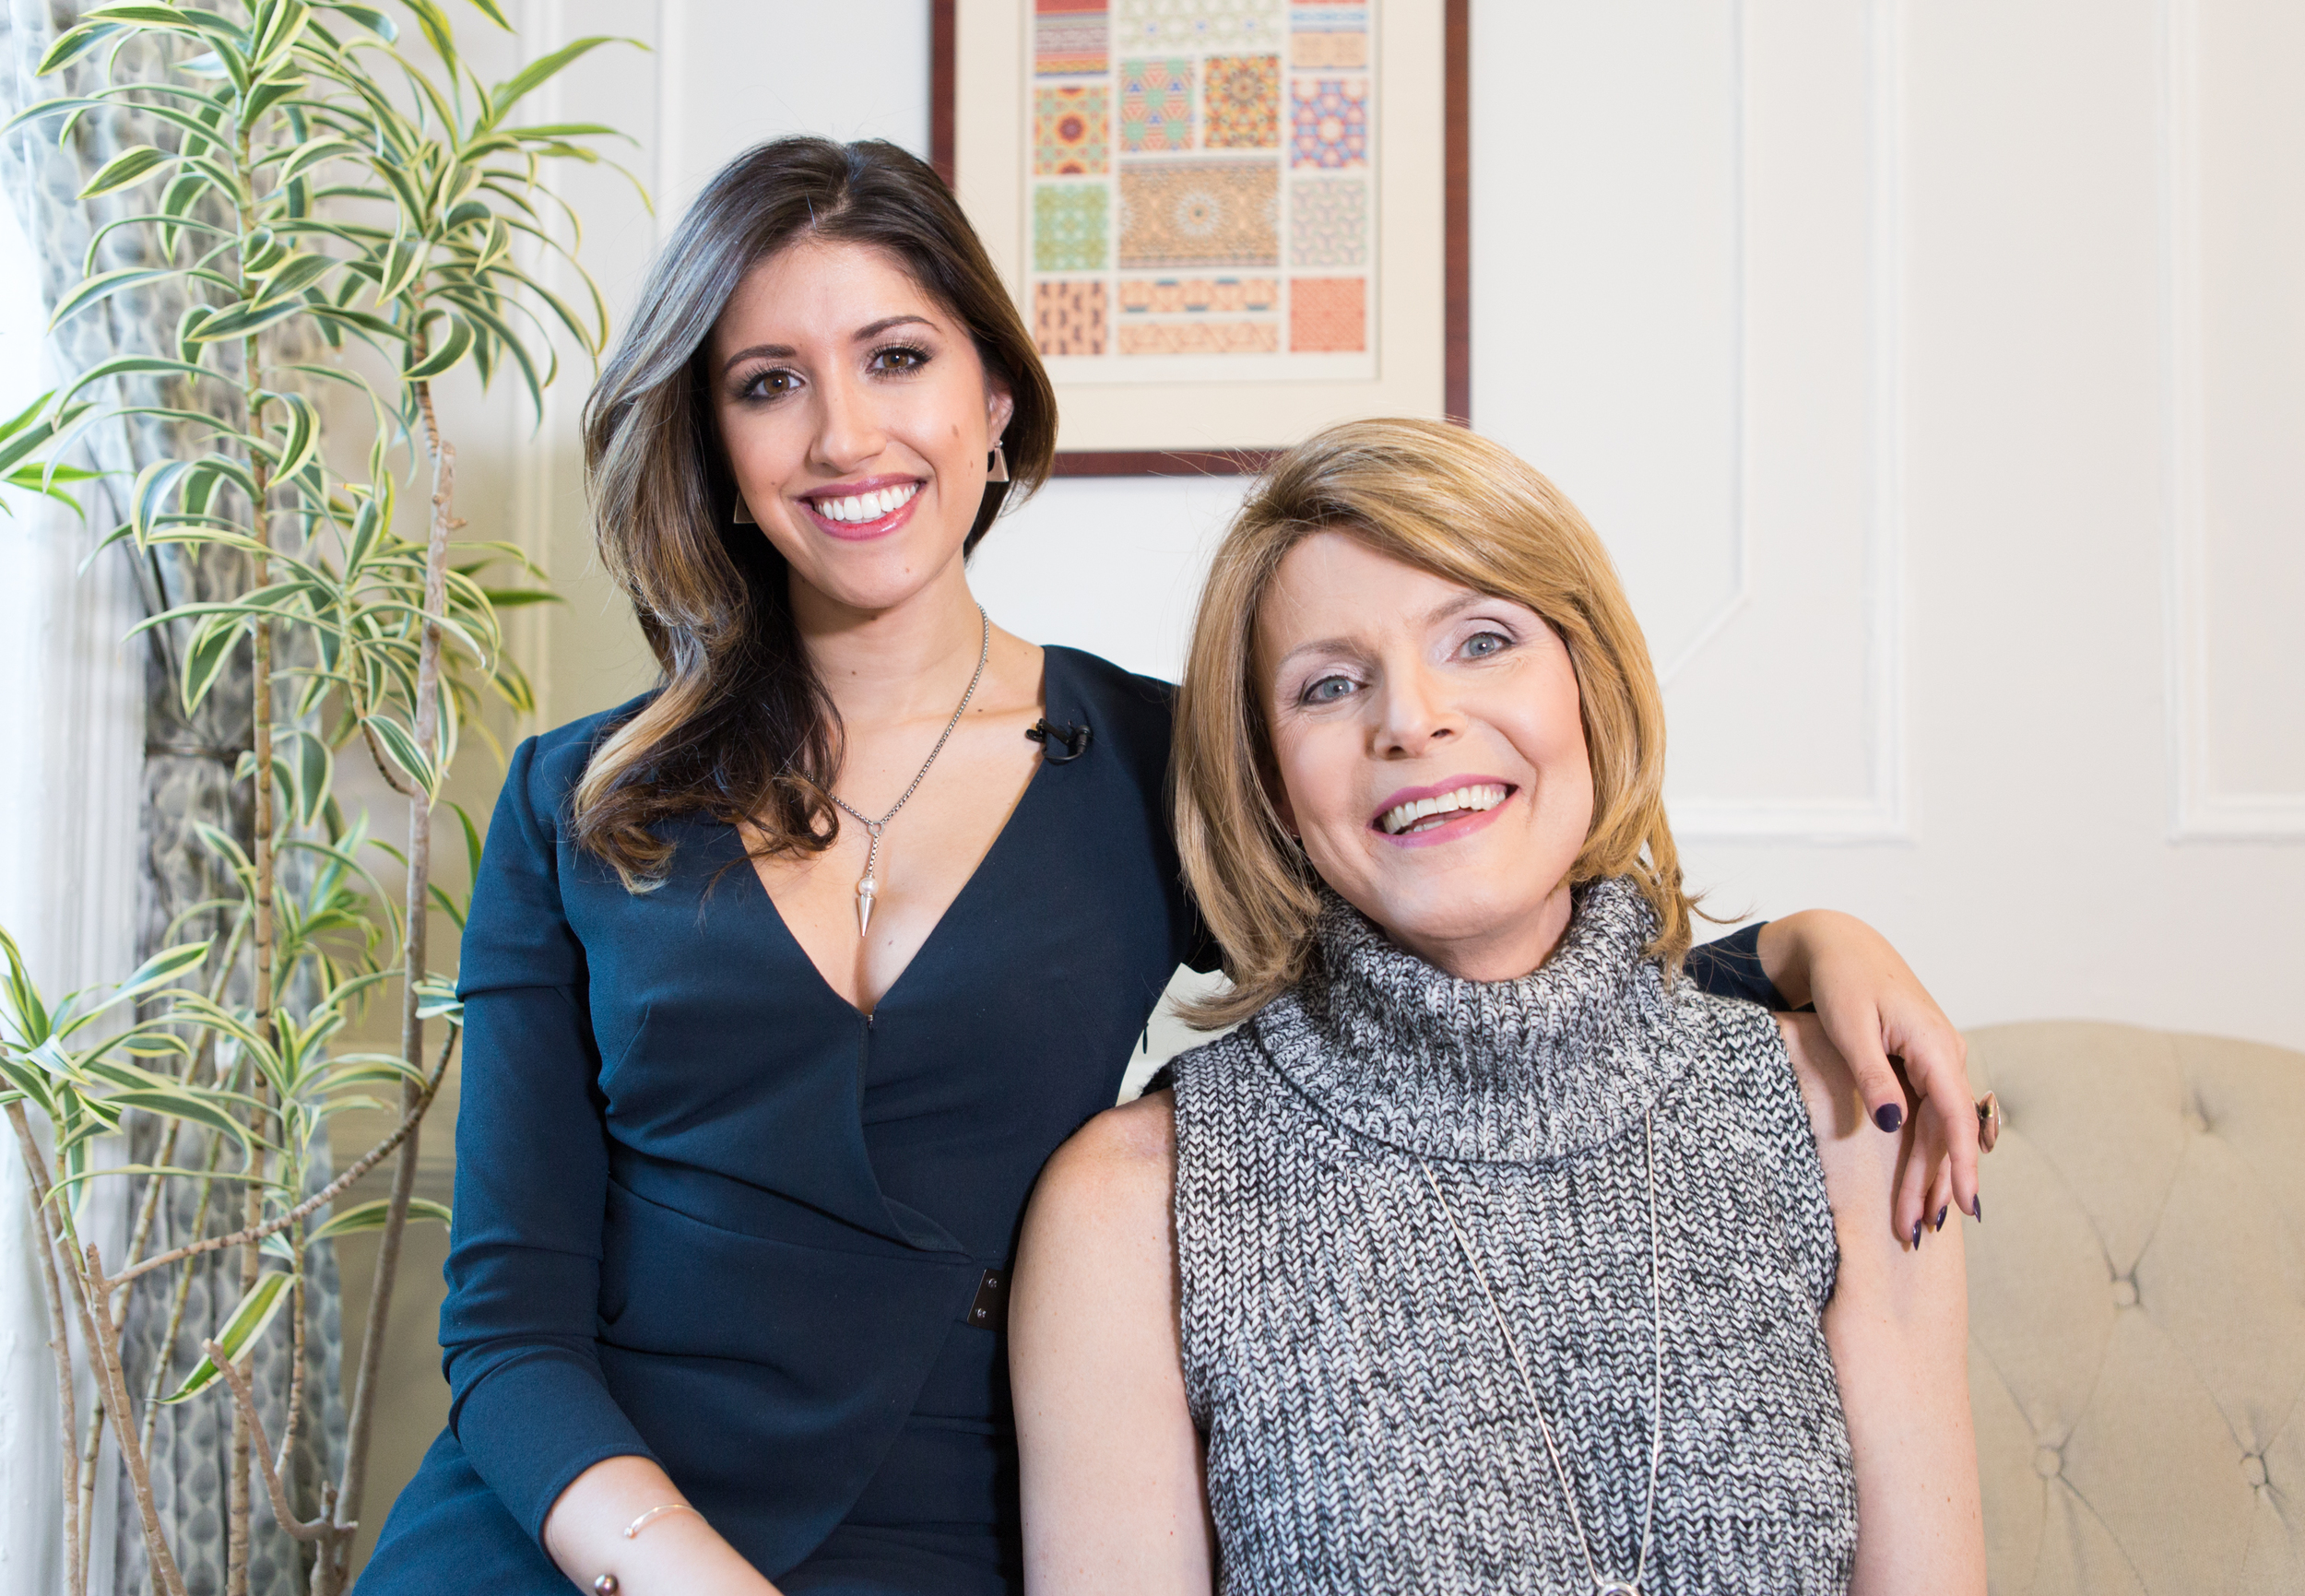 Image consultant Monica Prata poses with transgender client Bree Benz after a hair, makeup, and wardrobe session in New York City, for  Women in the World .